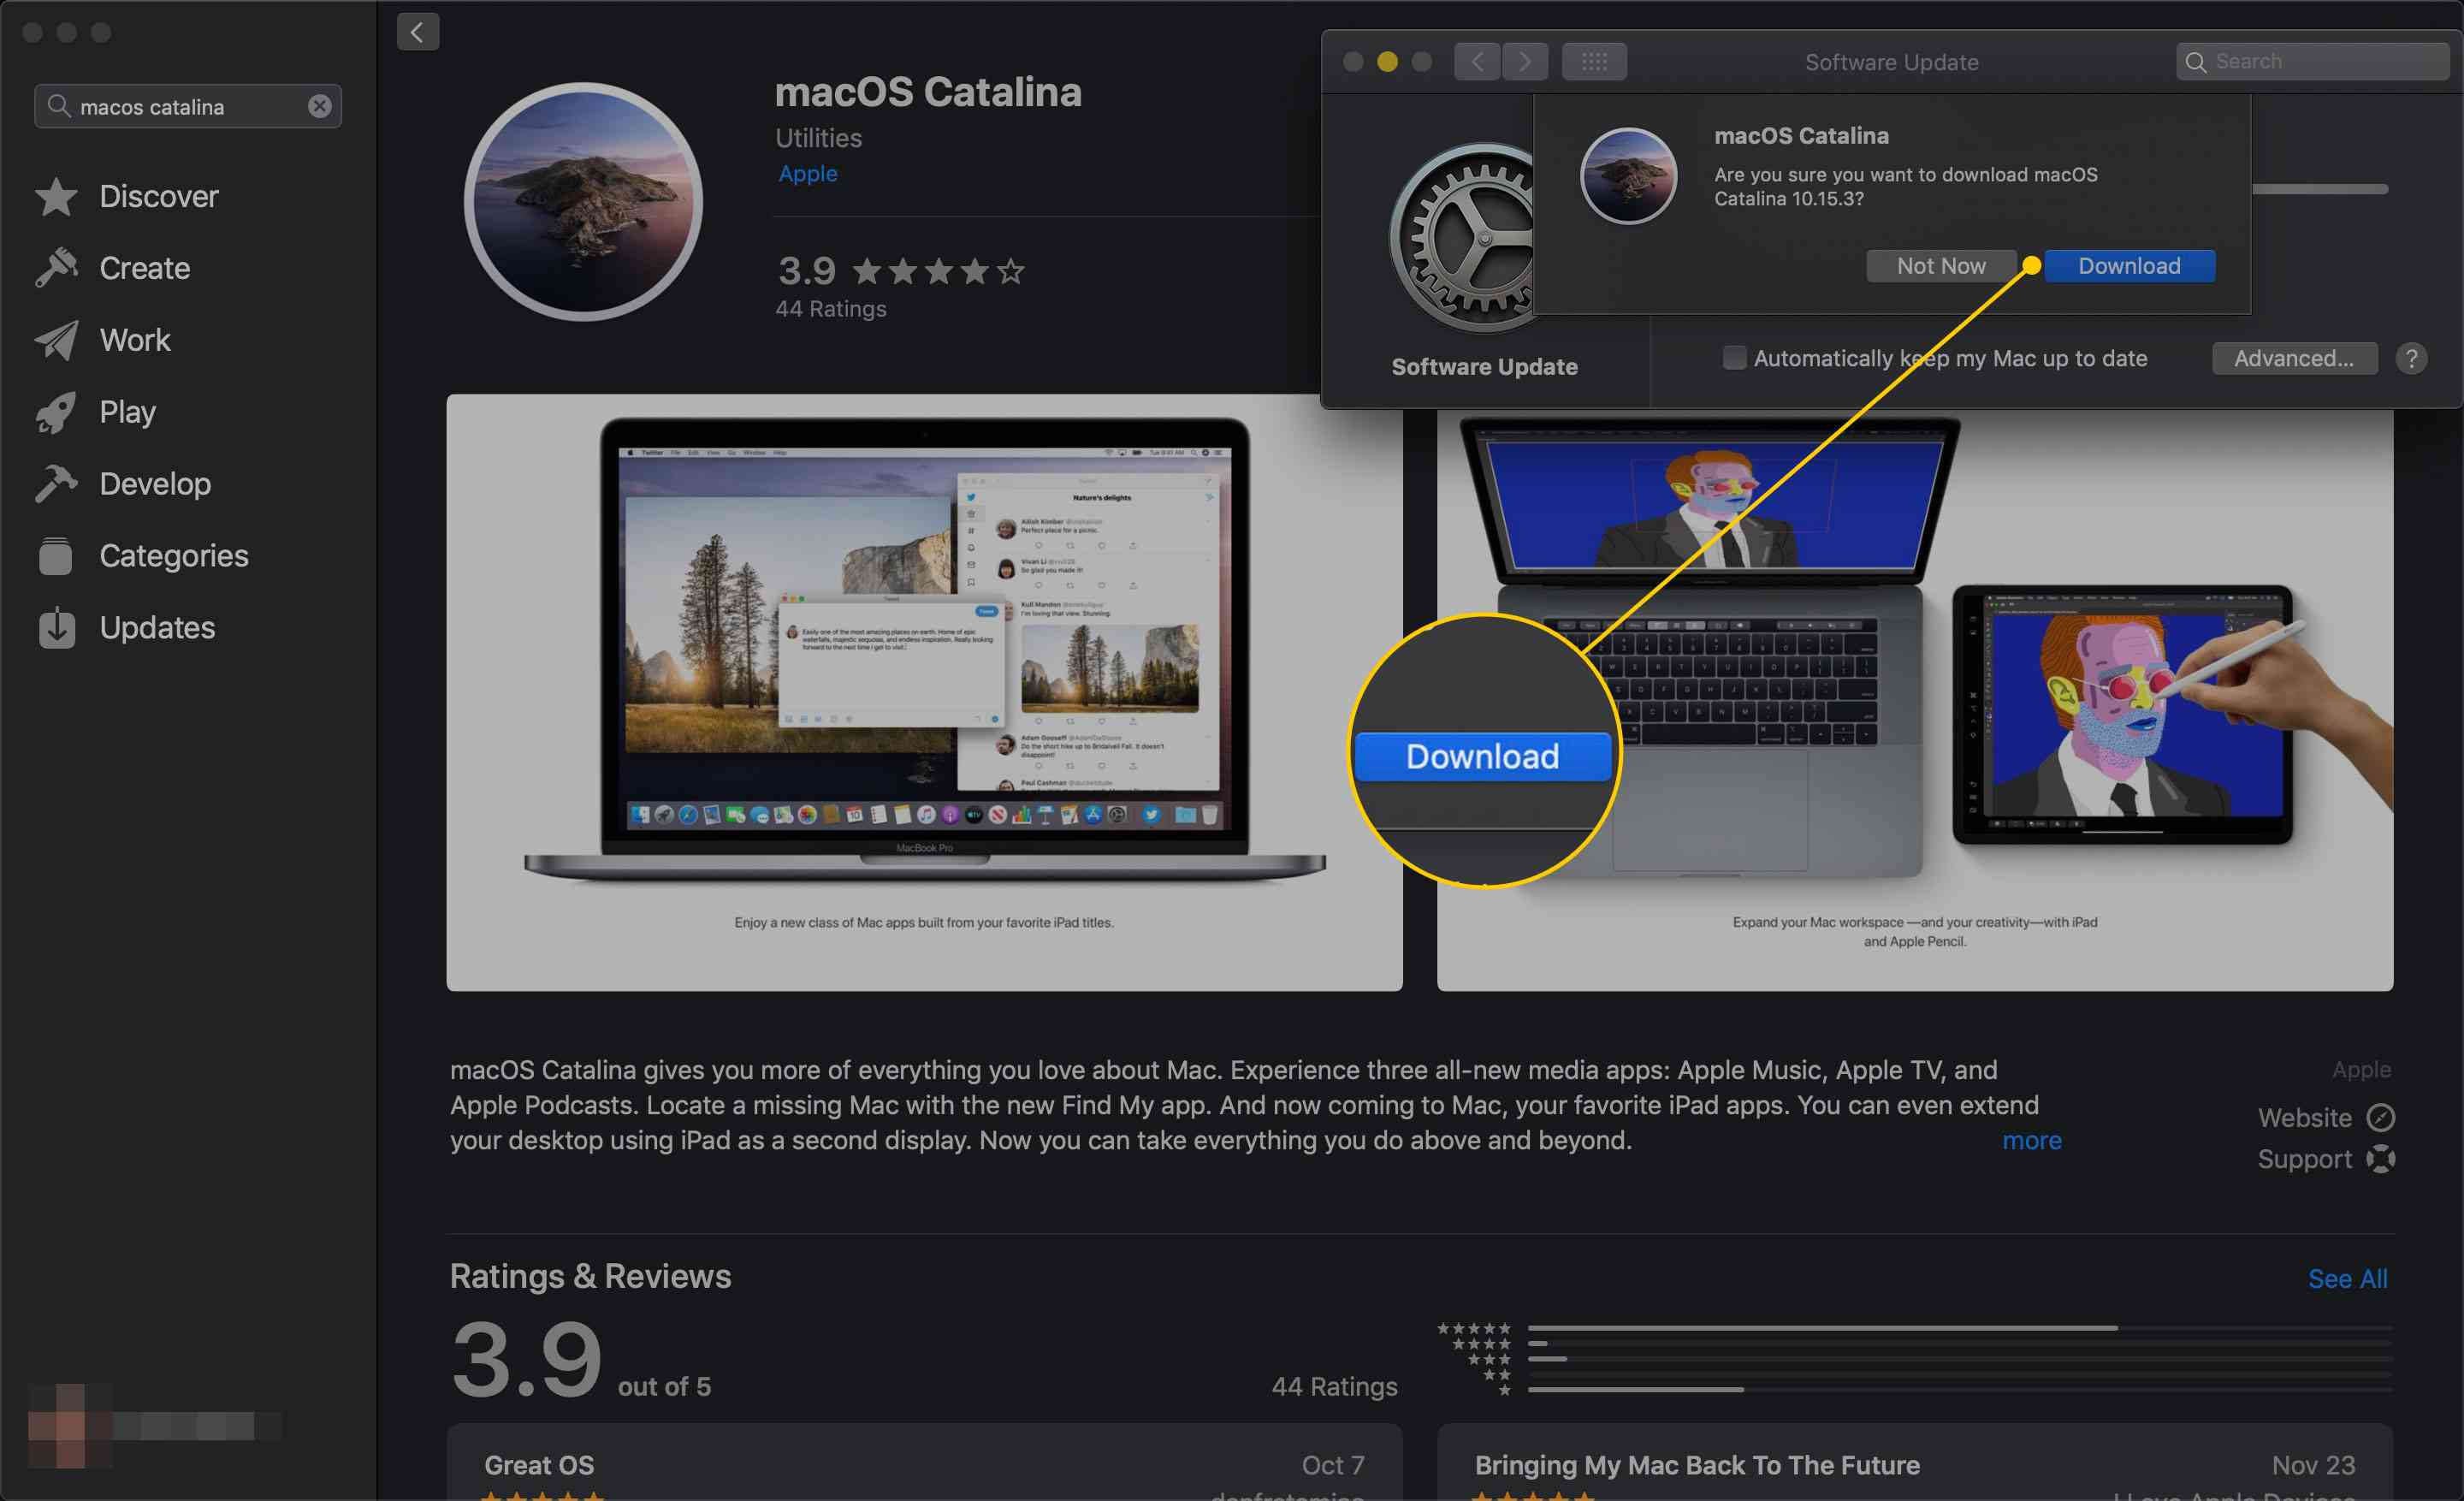 Download button for macOS Catalina